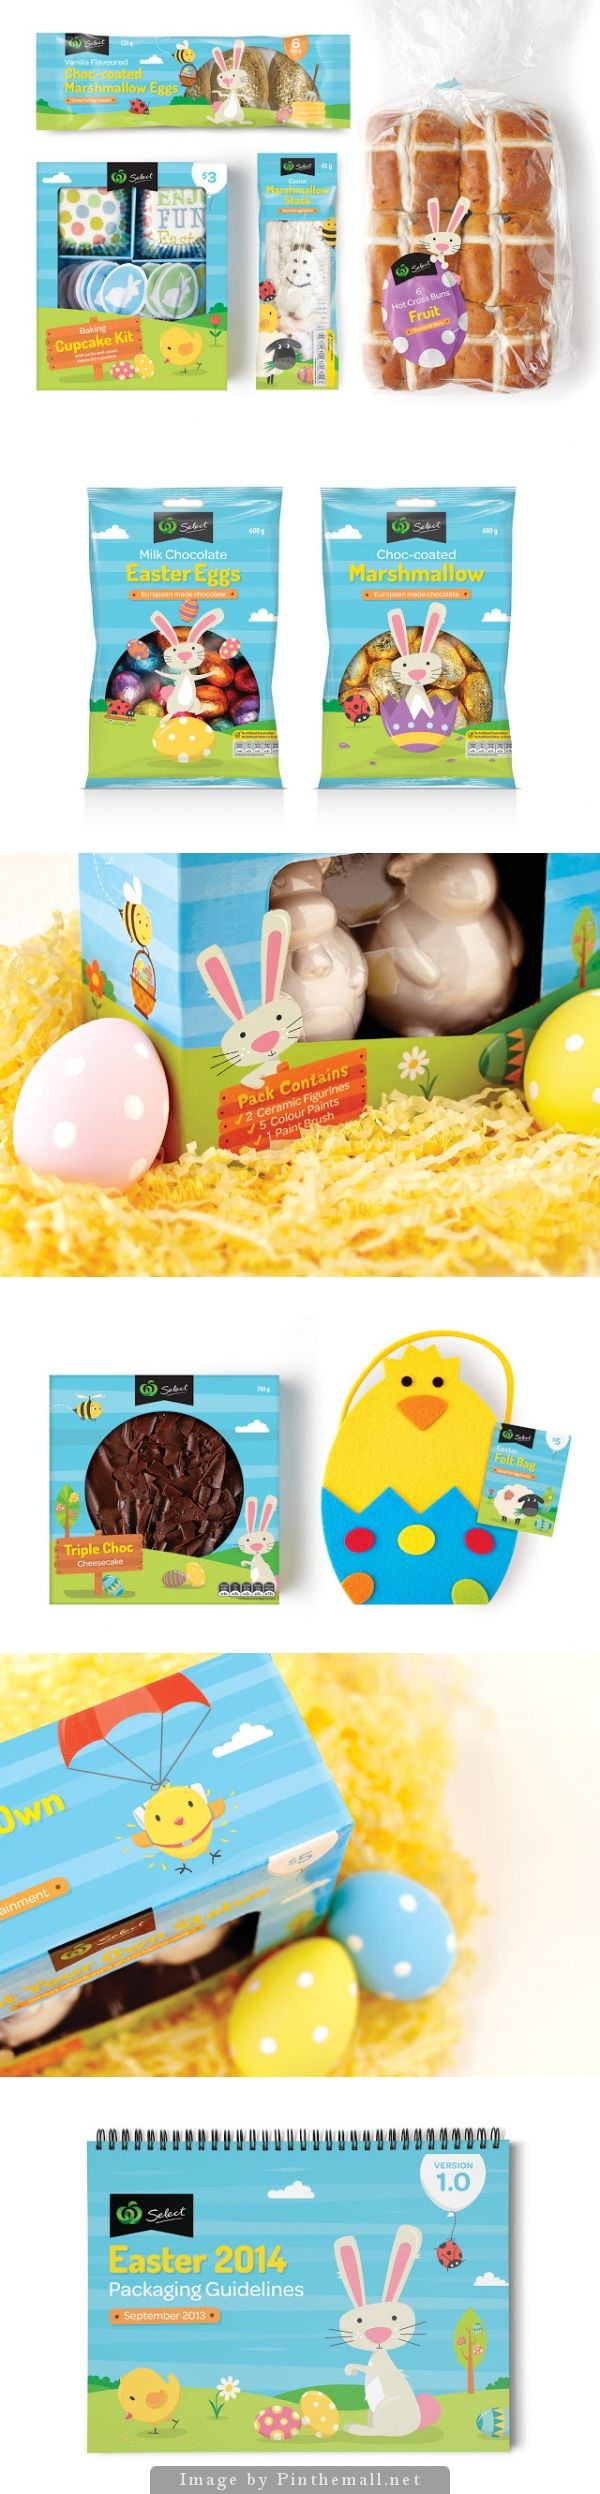 Woolworths Select Easter 2014